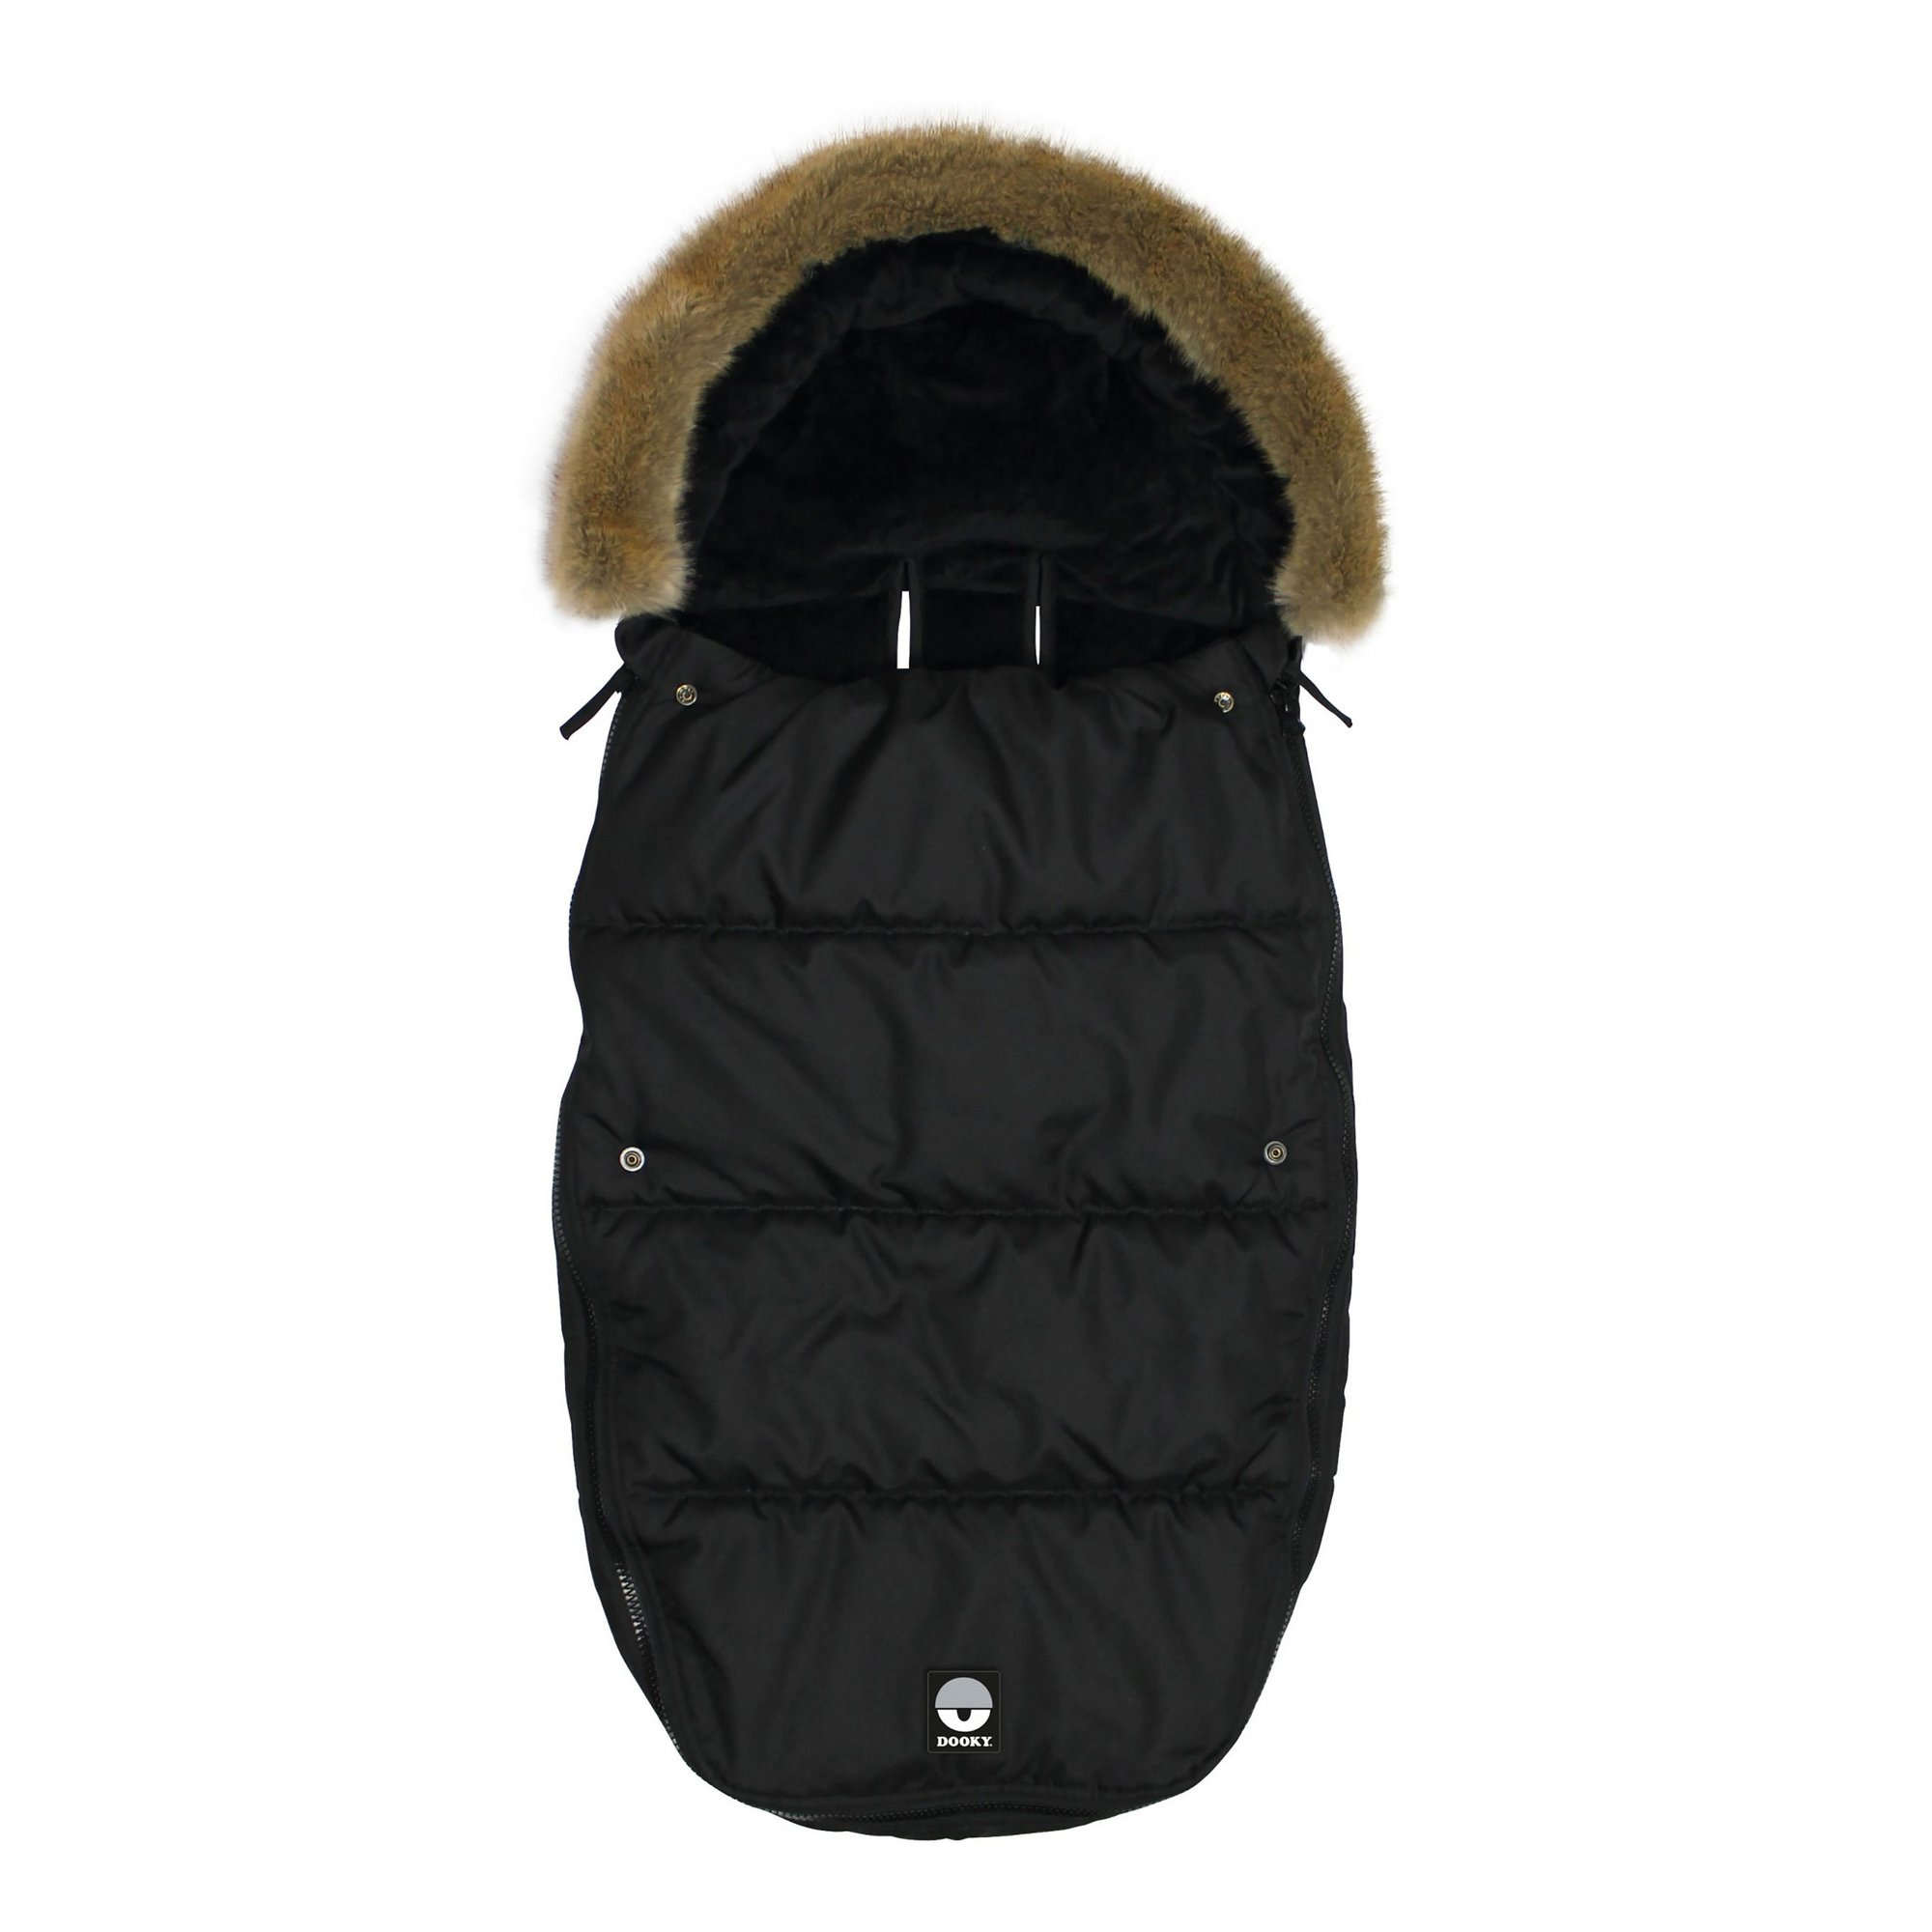 Image of Dooky Footmuff Black with Fur Trim